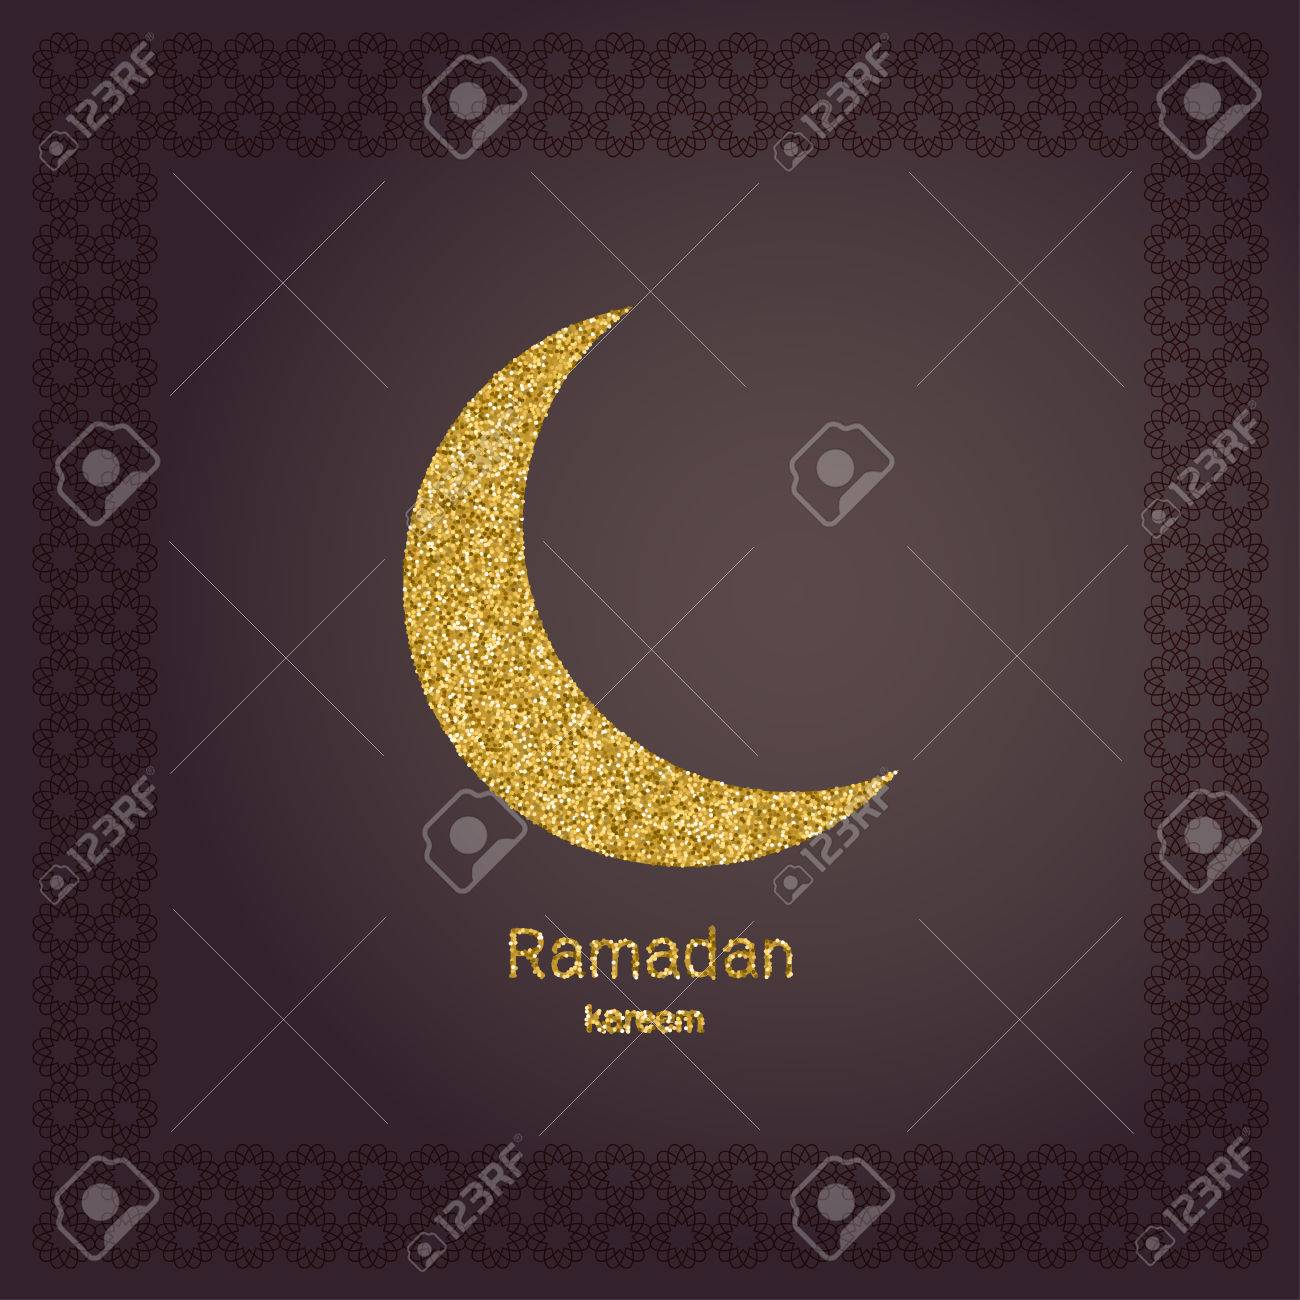 Ramadan kerim gold glitter moon template design for greeting ramadan kerim gold glitter moon template design for greeting card banner poster stopboris Images